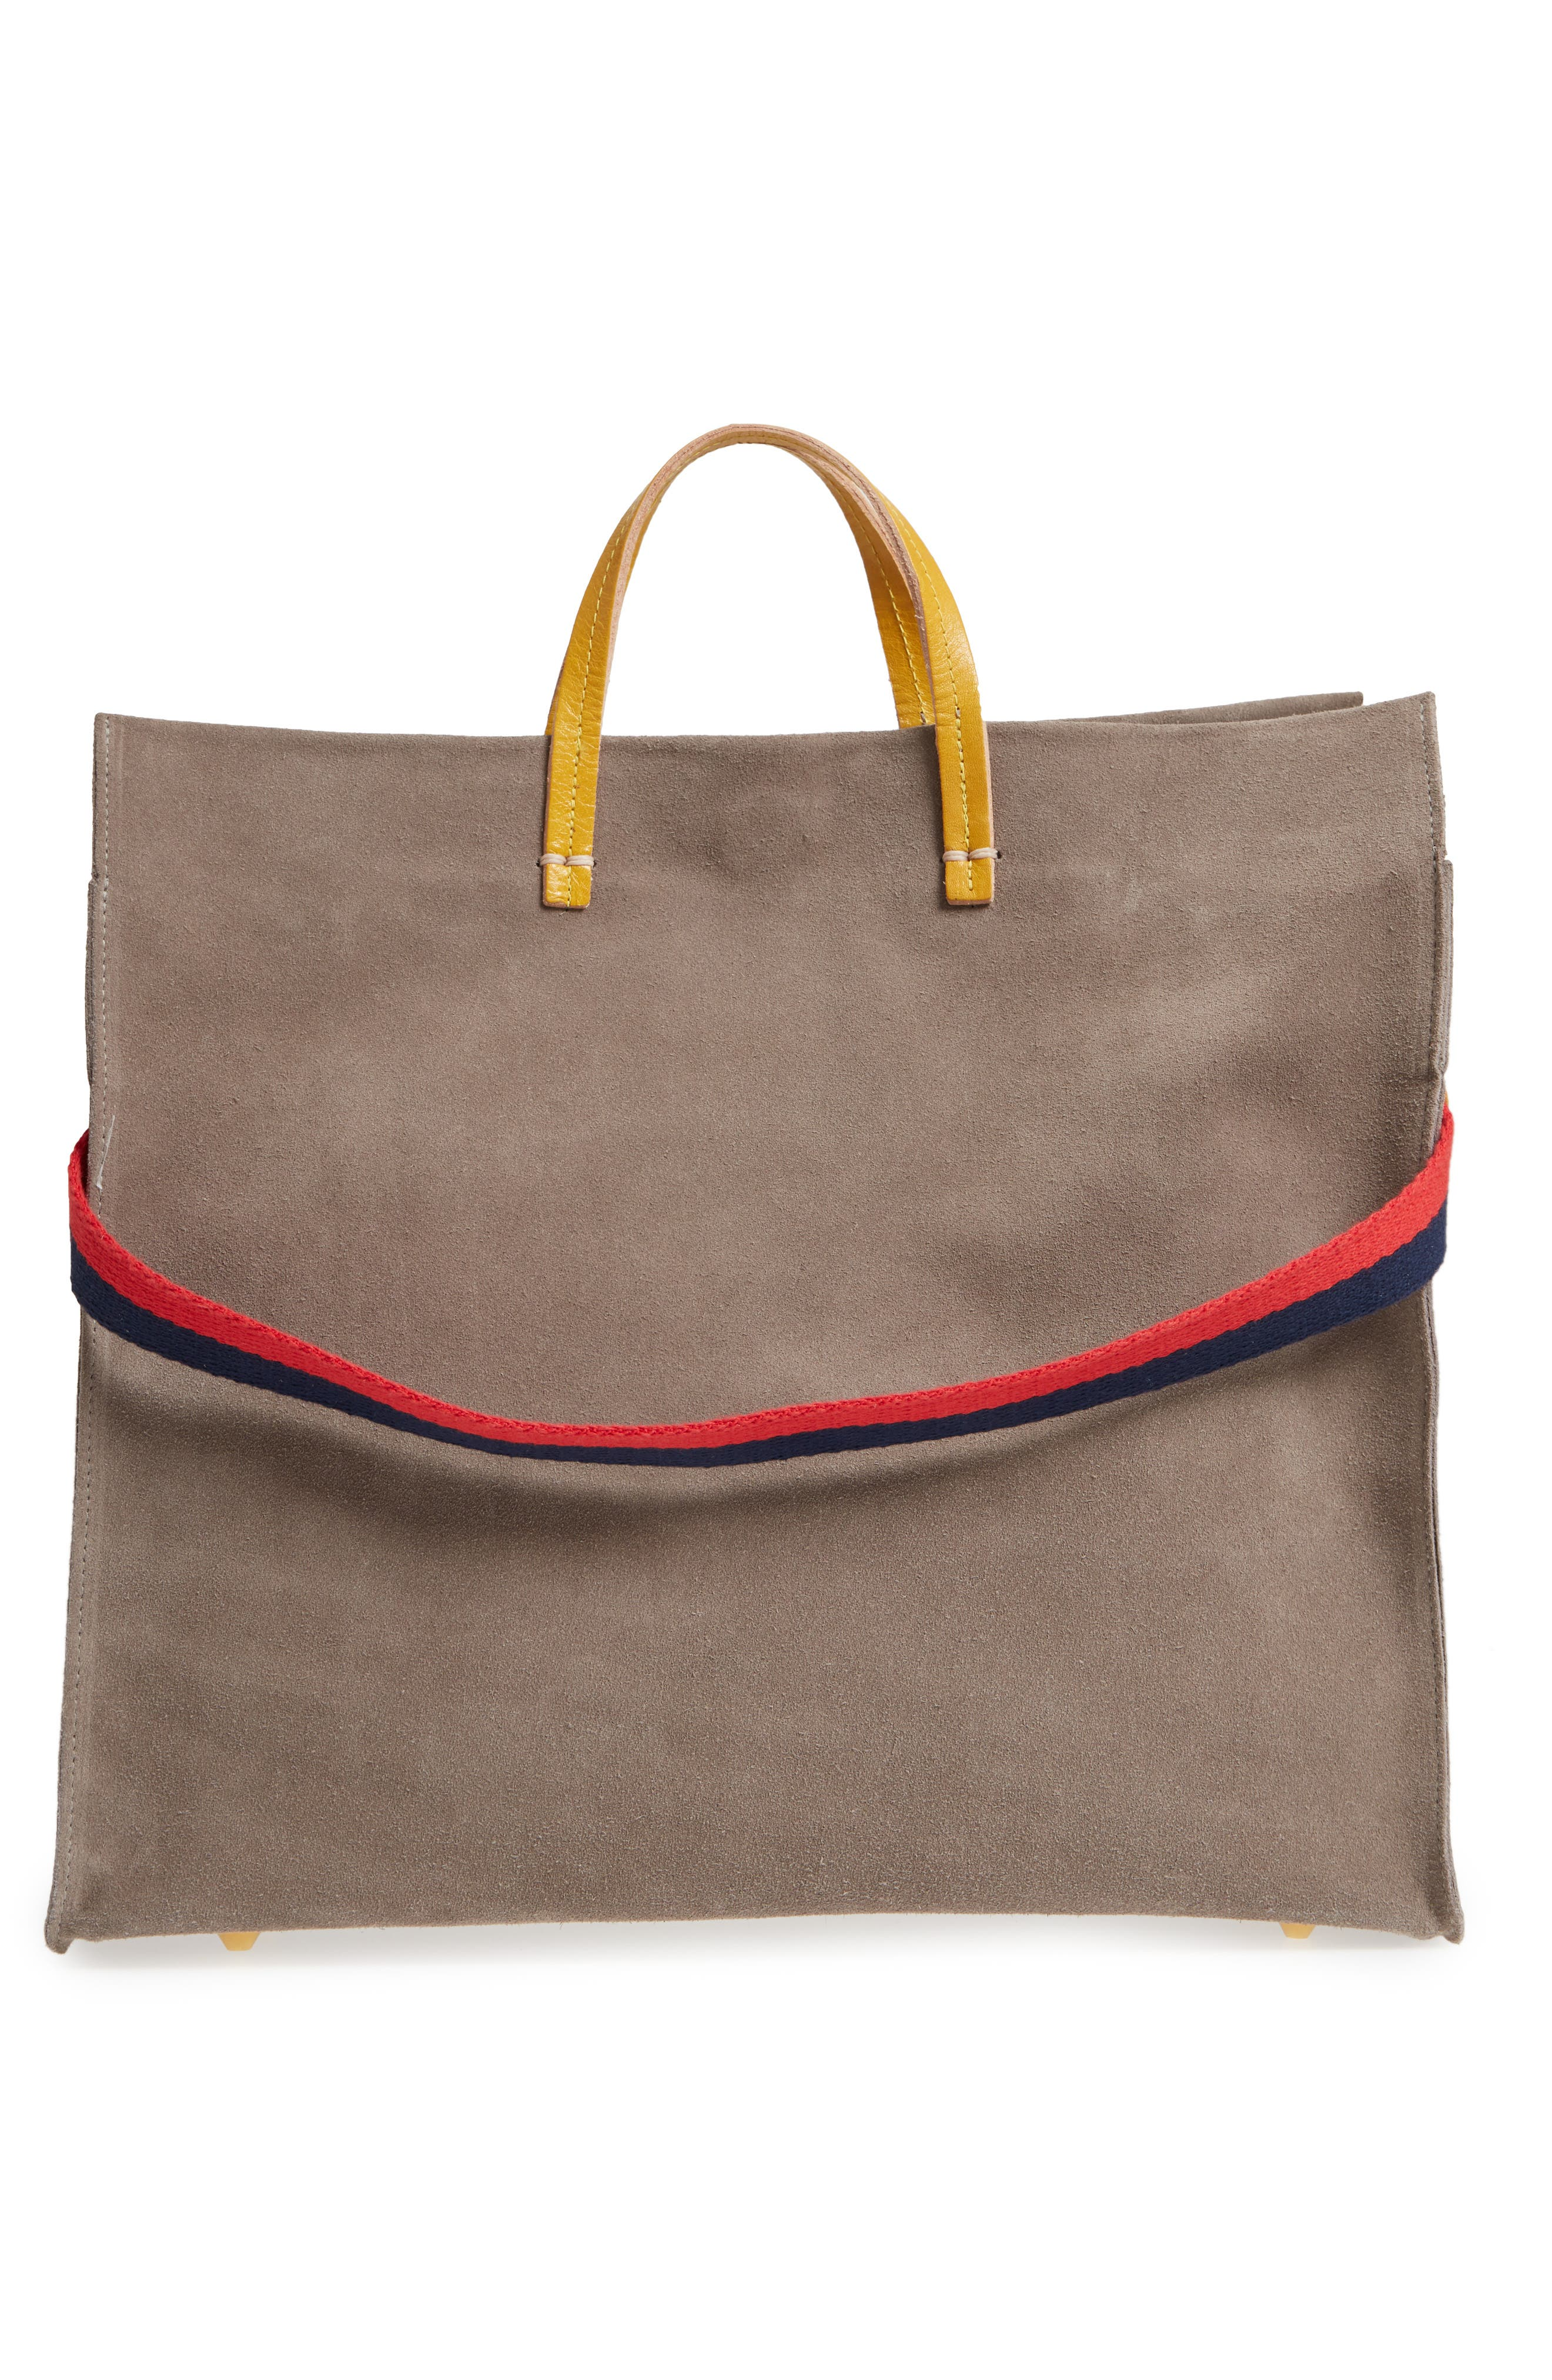 Simple Suede Tote,                             Alternate thumbnail 4, color,                             TAUPE/ YELLOW RUSTIC